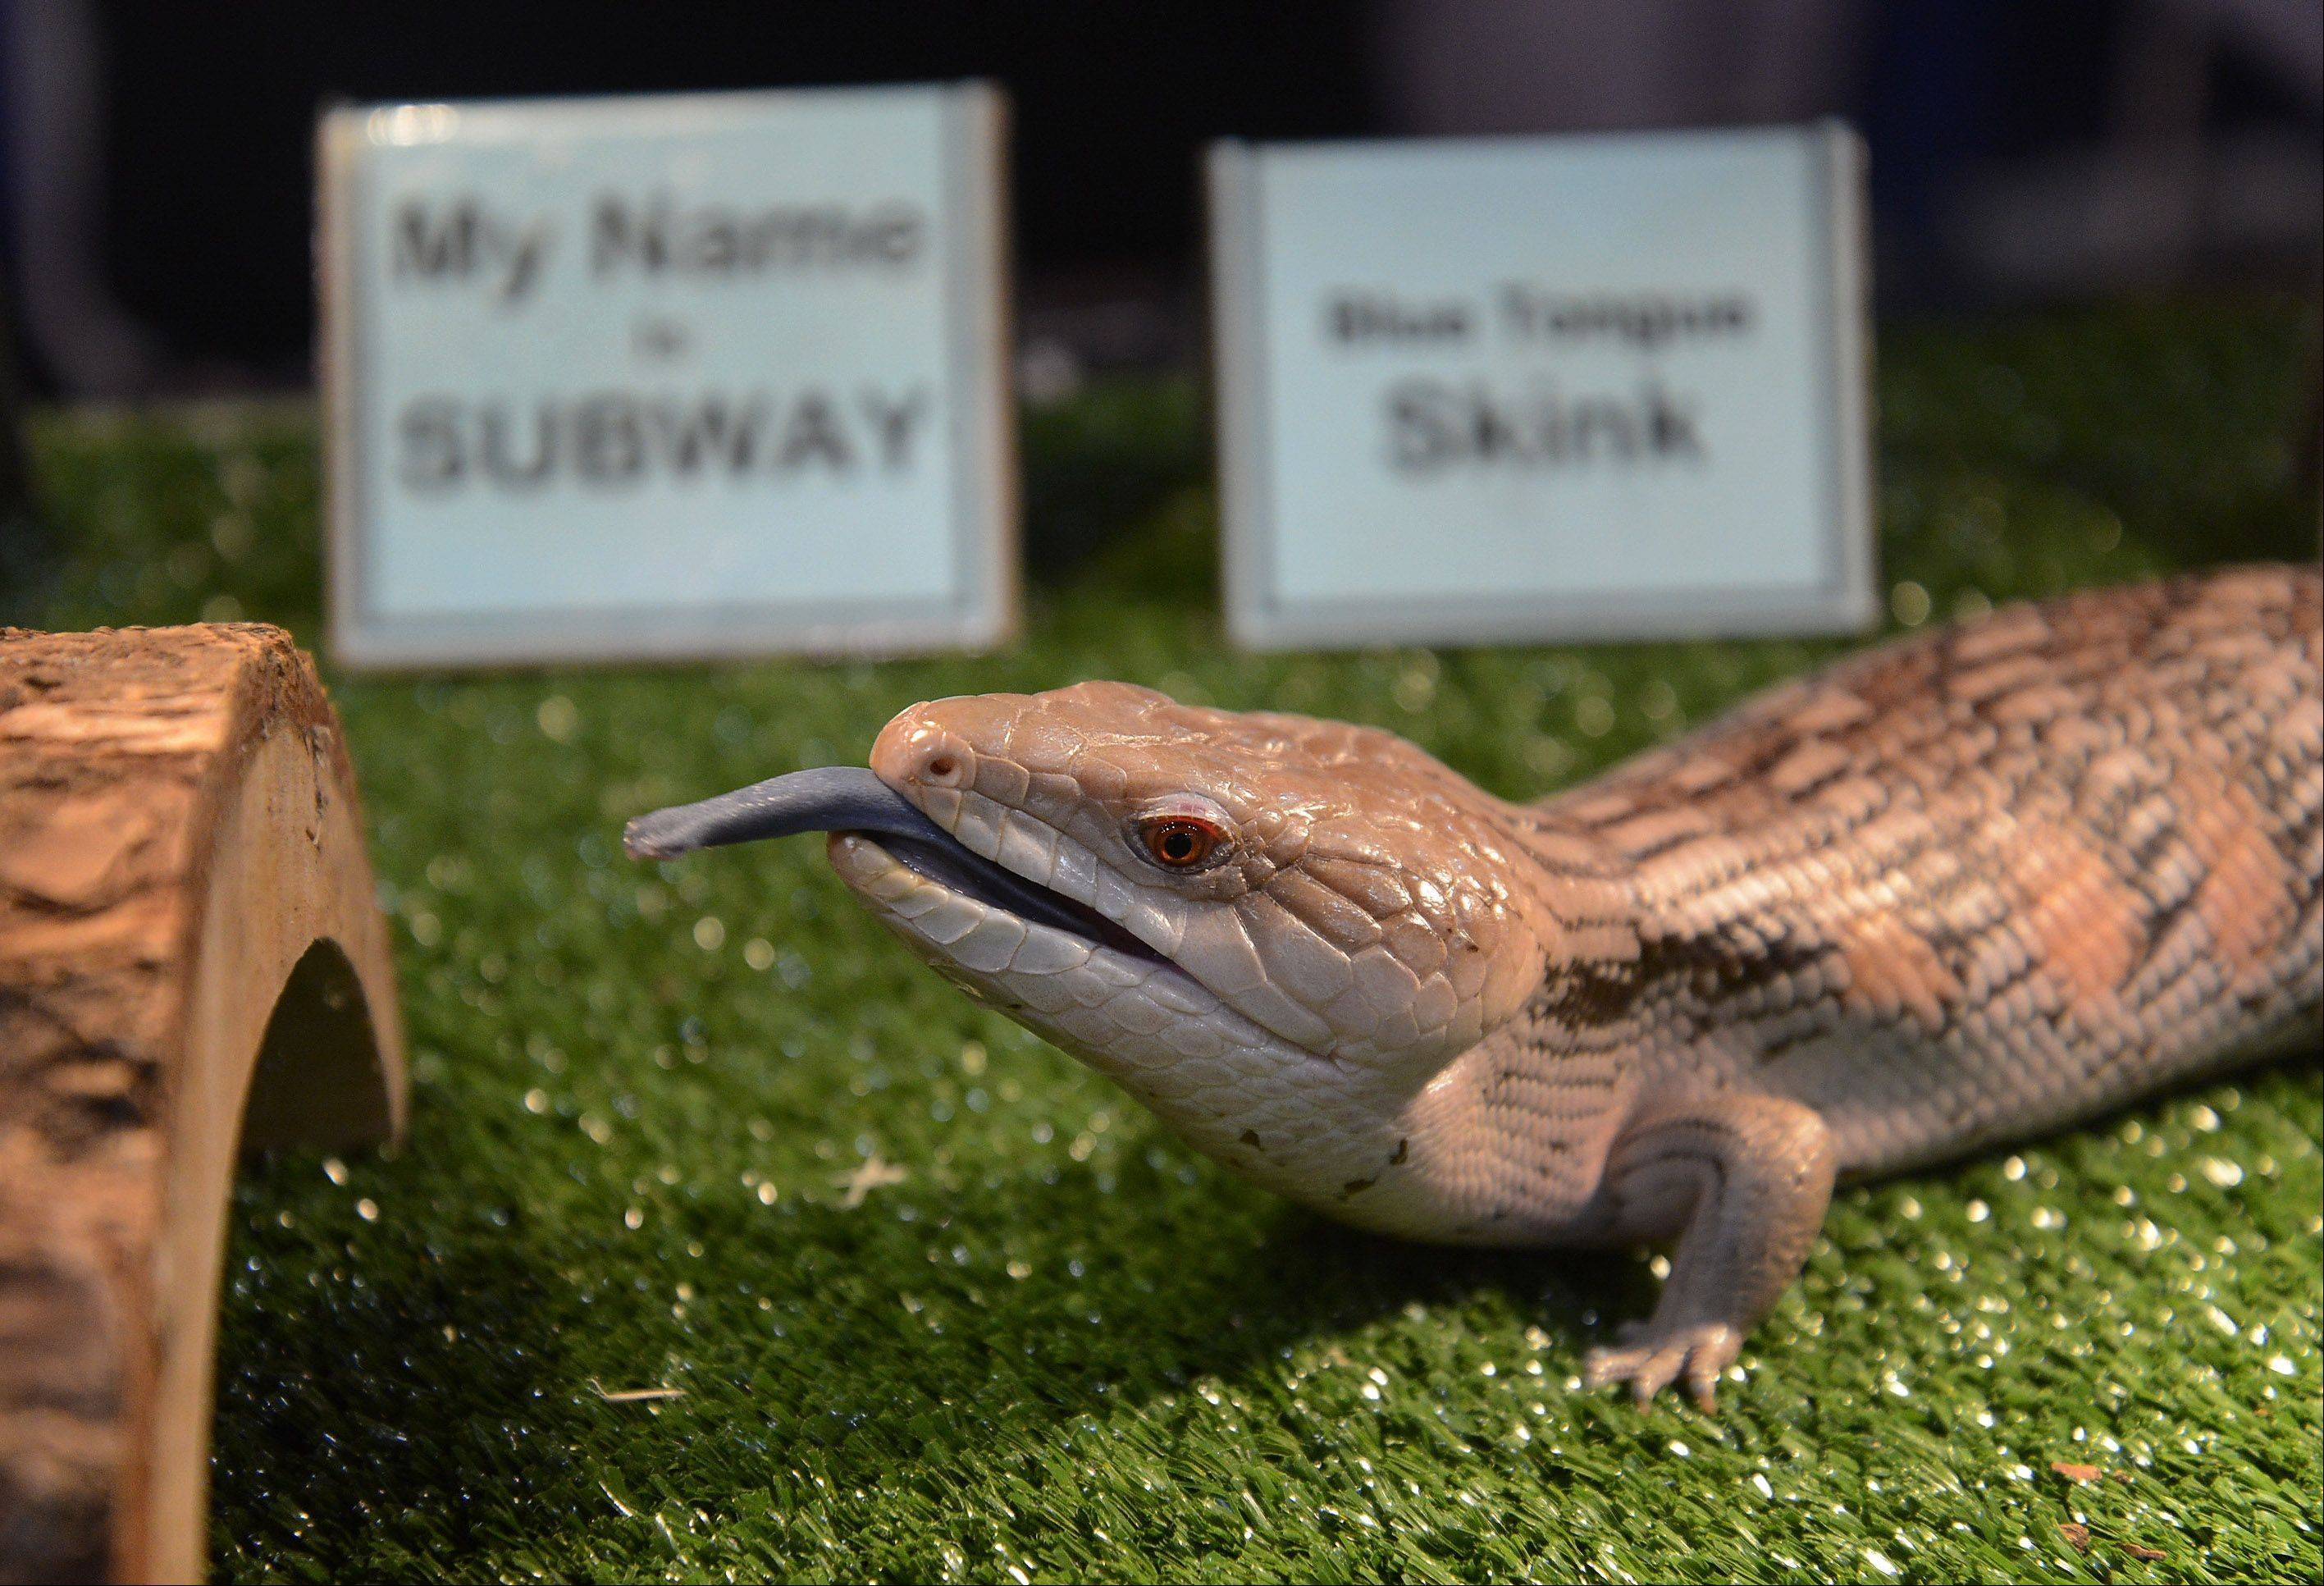 Subway, a Blue Tongue Skink, sticks out his blue tongue, Friday at the 28th Annual Chicago Outdoor Sports Show at the Donald E. Stephens Convention Center in Rosemont. Subway is part of an exhibit by the Chicago Herpetological Society.